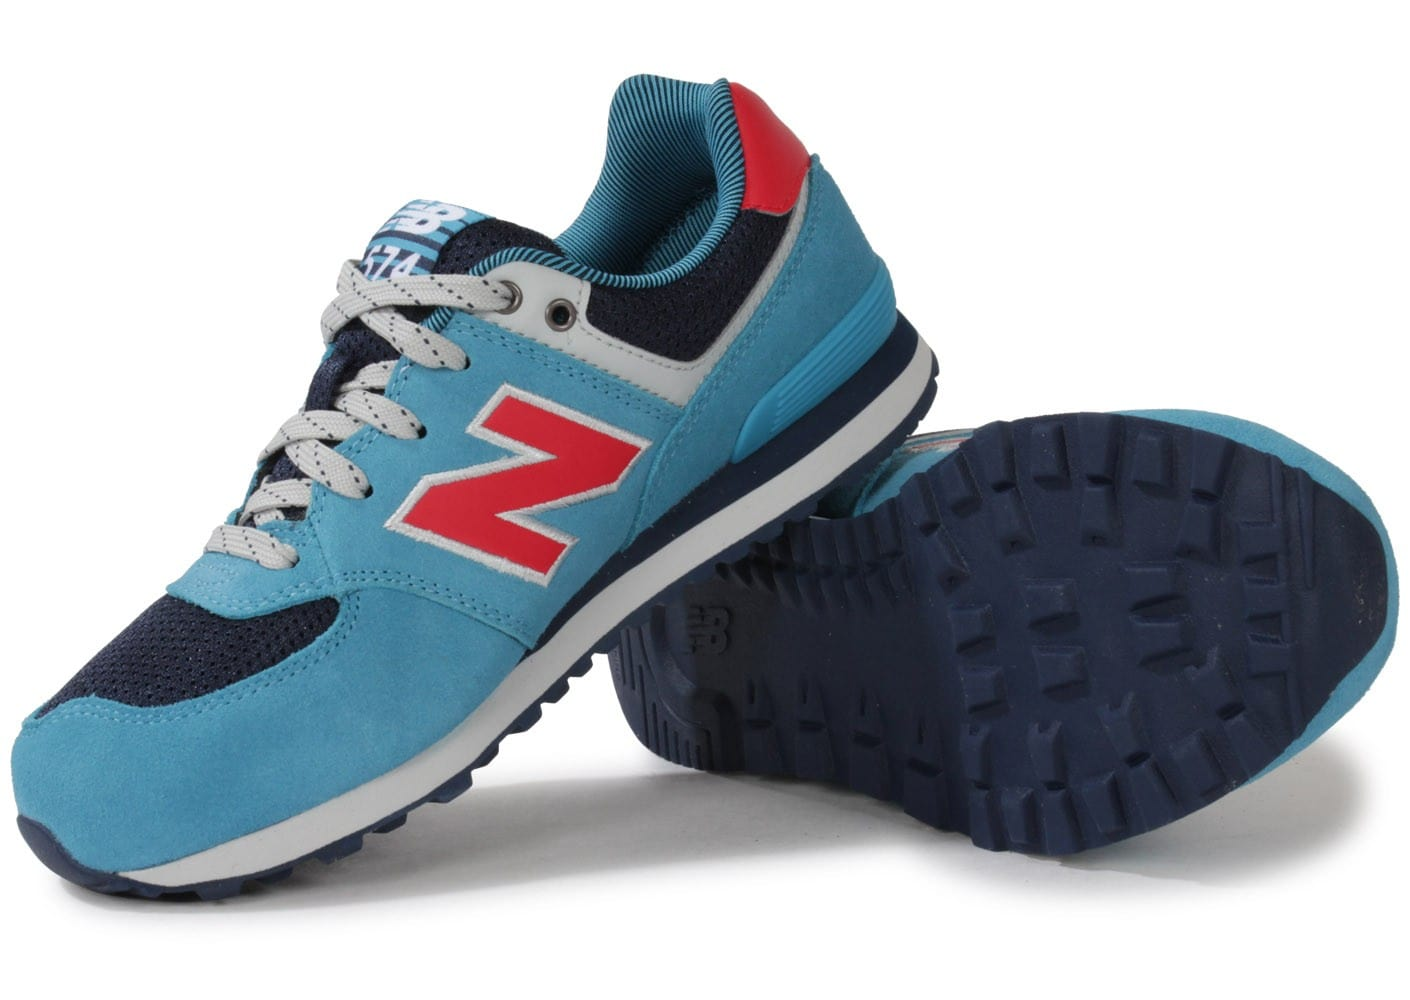 vente timberland - 0533-chaussures-new-balance-kl574-cag-turquoise-vue-dessous-semelle.jpg